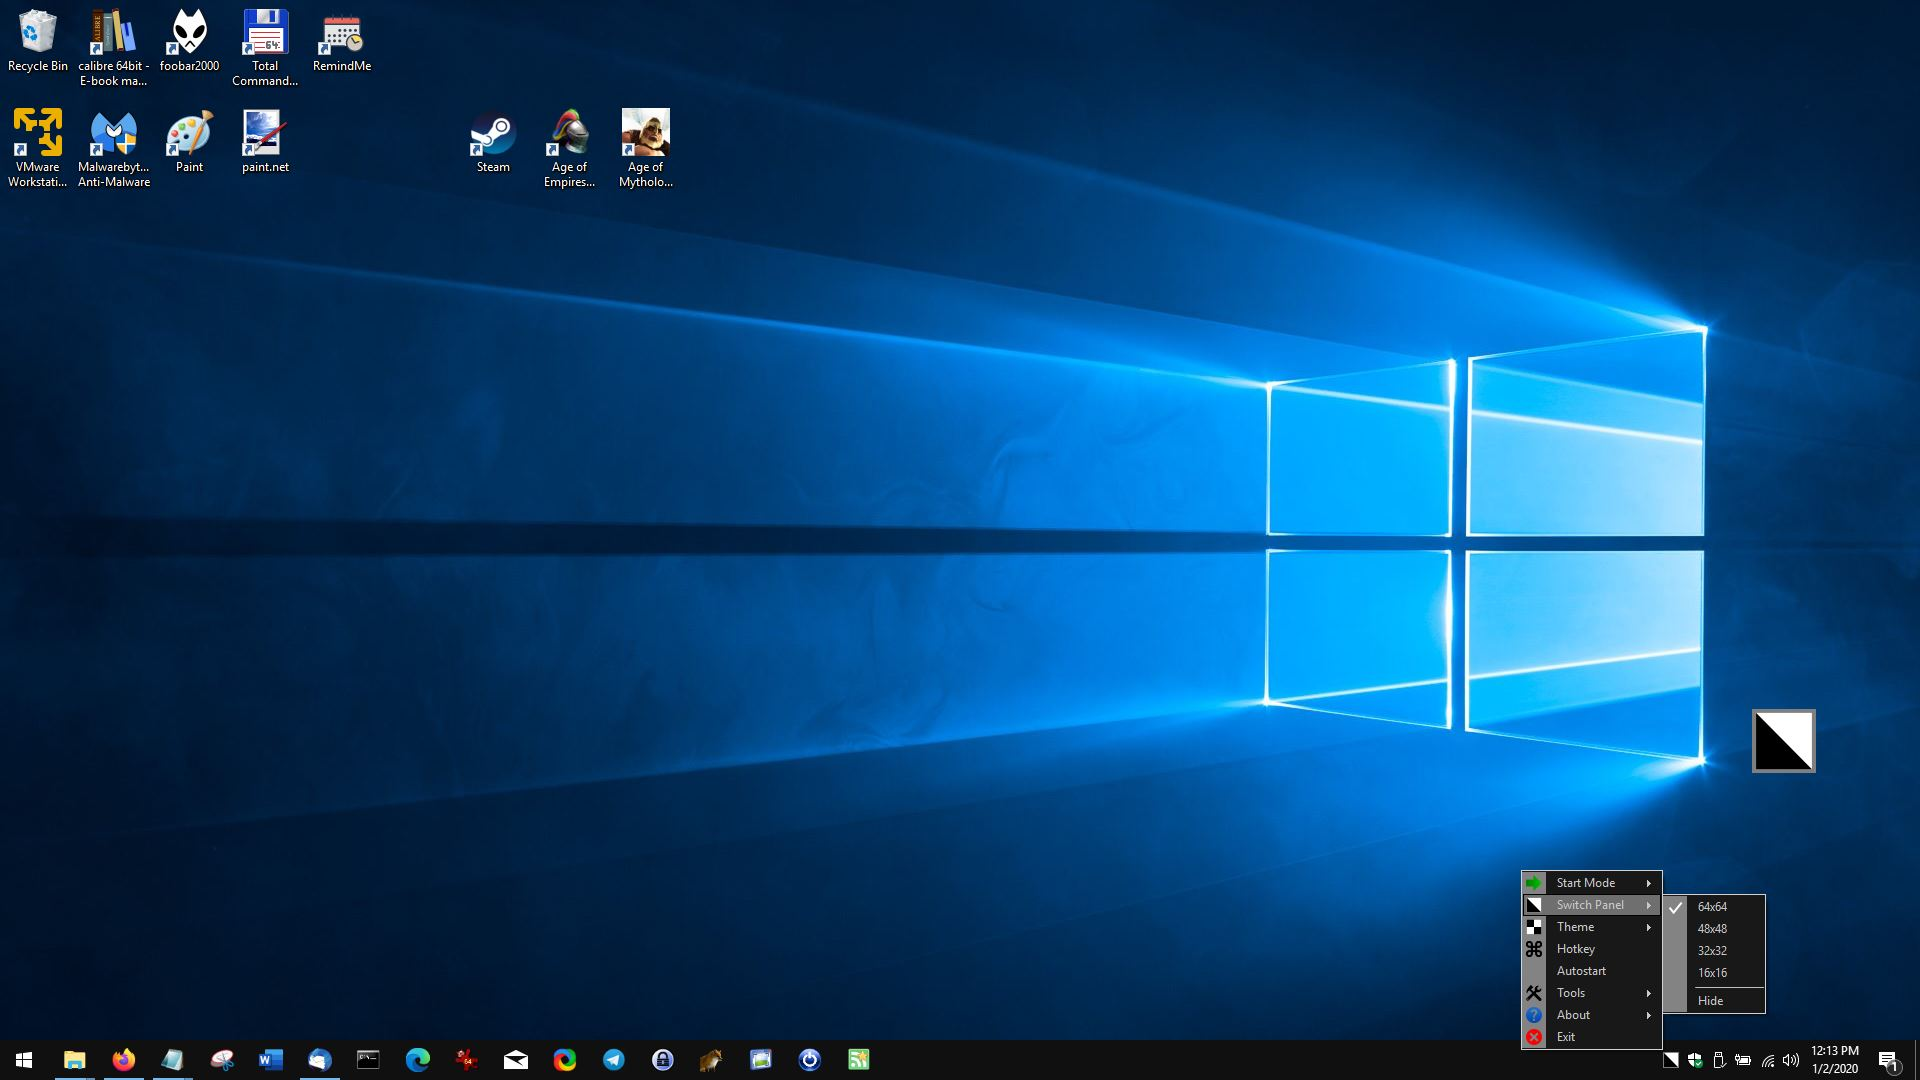 Your PC is not compatible with Windows 11? Here are your options! Enable-dark-theme-on-Windows-10-with-a-single-click-or-hotkey-using-Easy-Dark-Mode.jpg